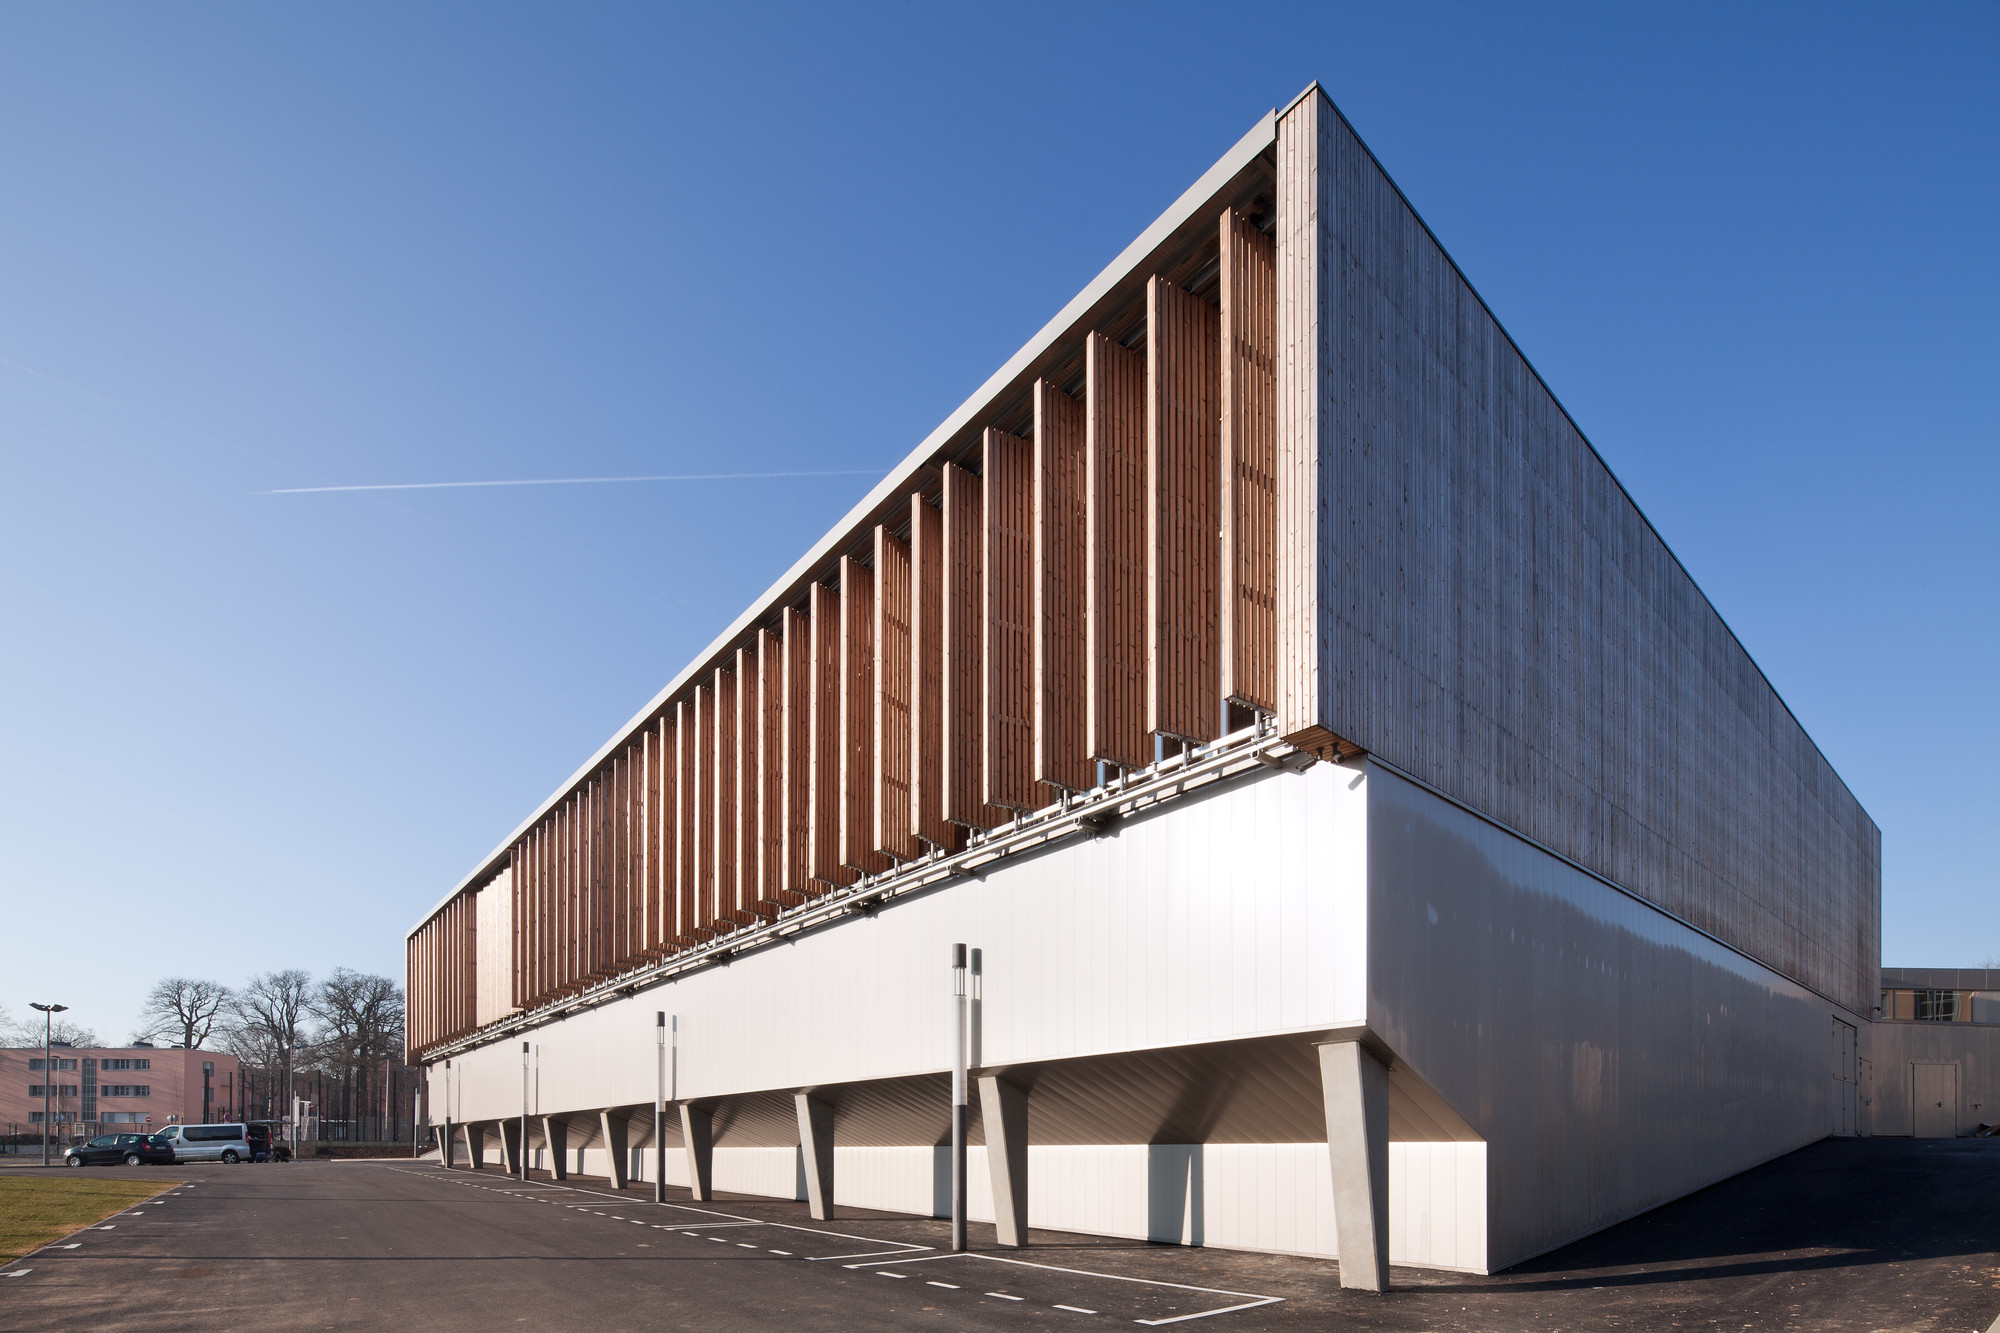 Sports complex in Châtenay-Malabry / aEa - agence Engasser + associés, © Mathieu Ducros